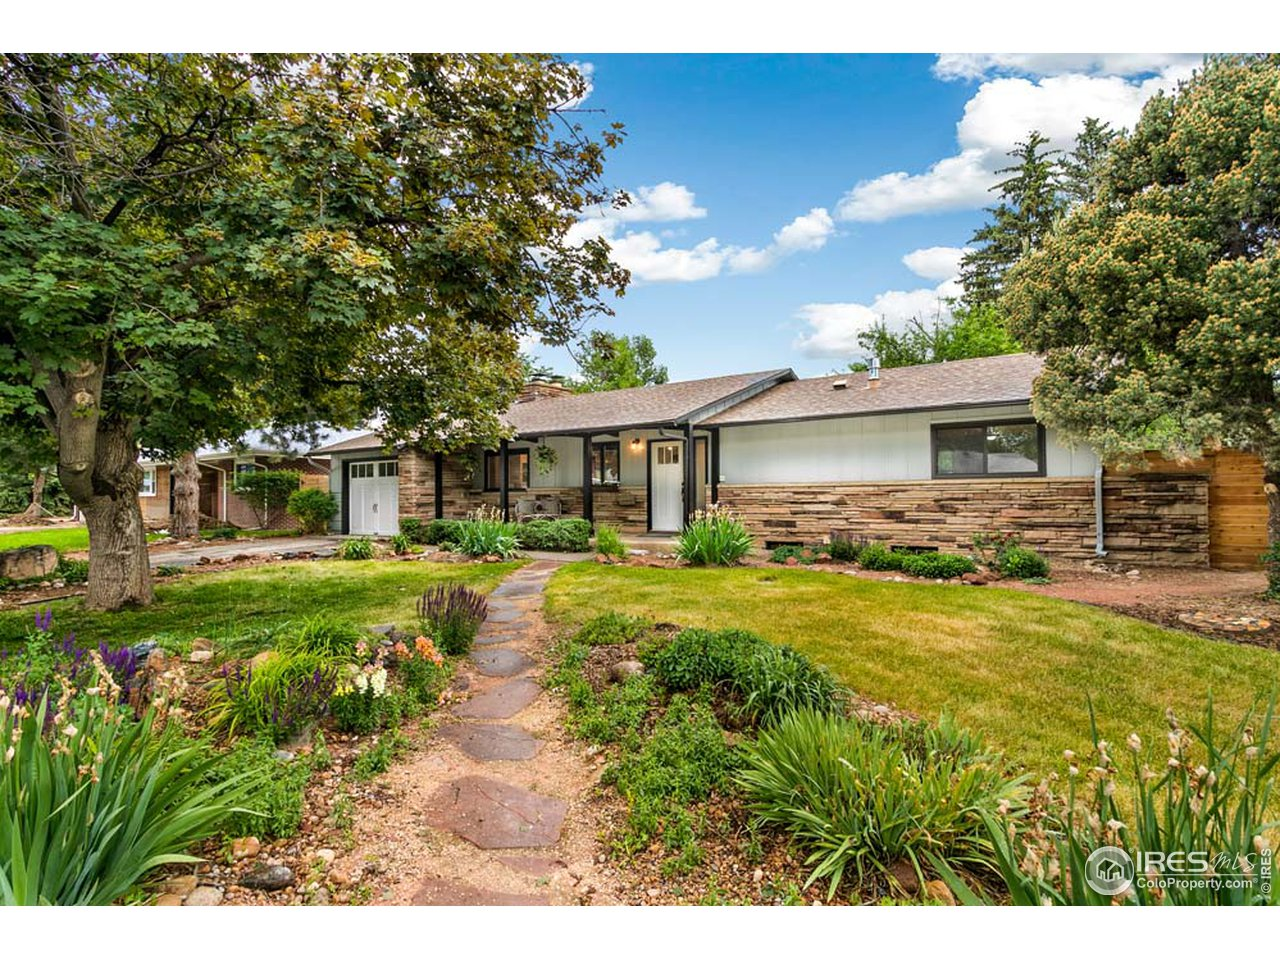 1304 Welch St, Fort Collins CO 80524